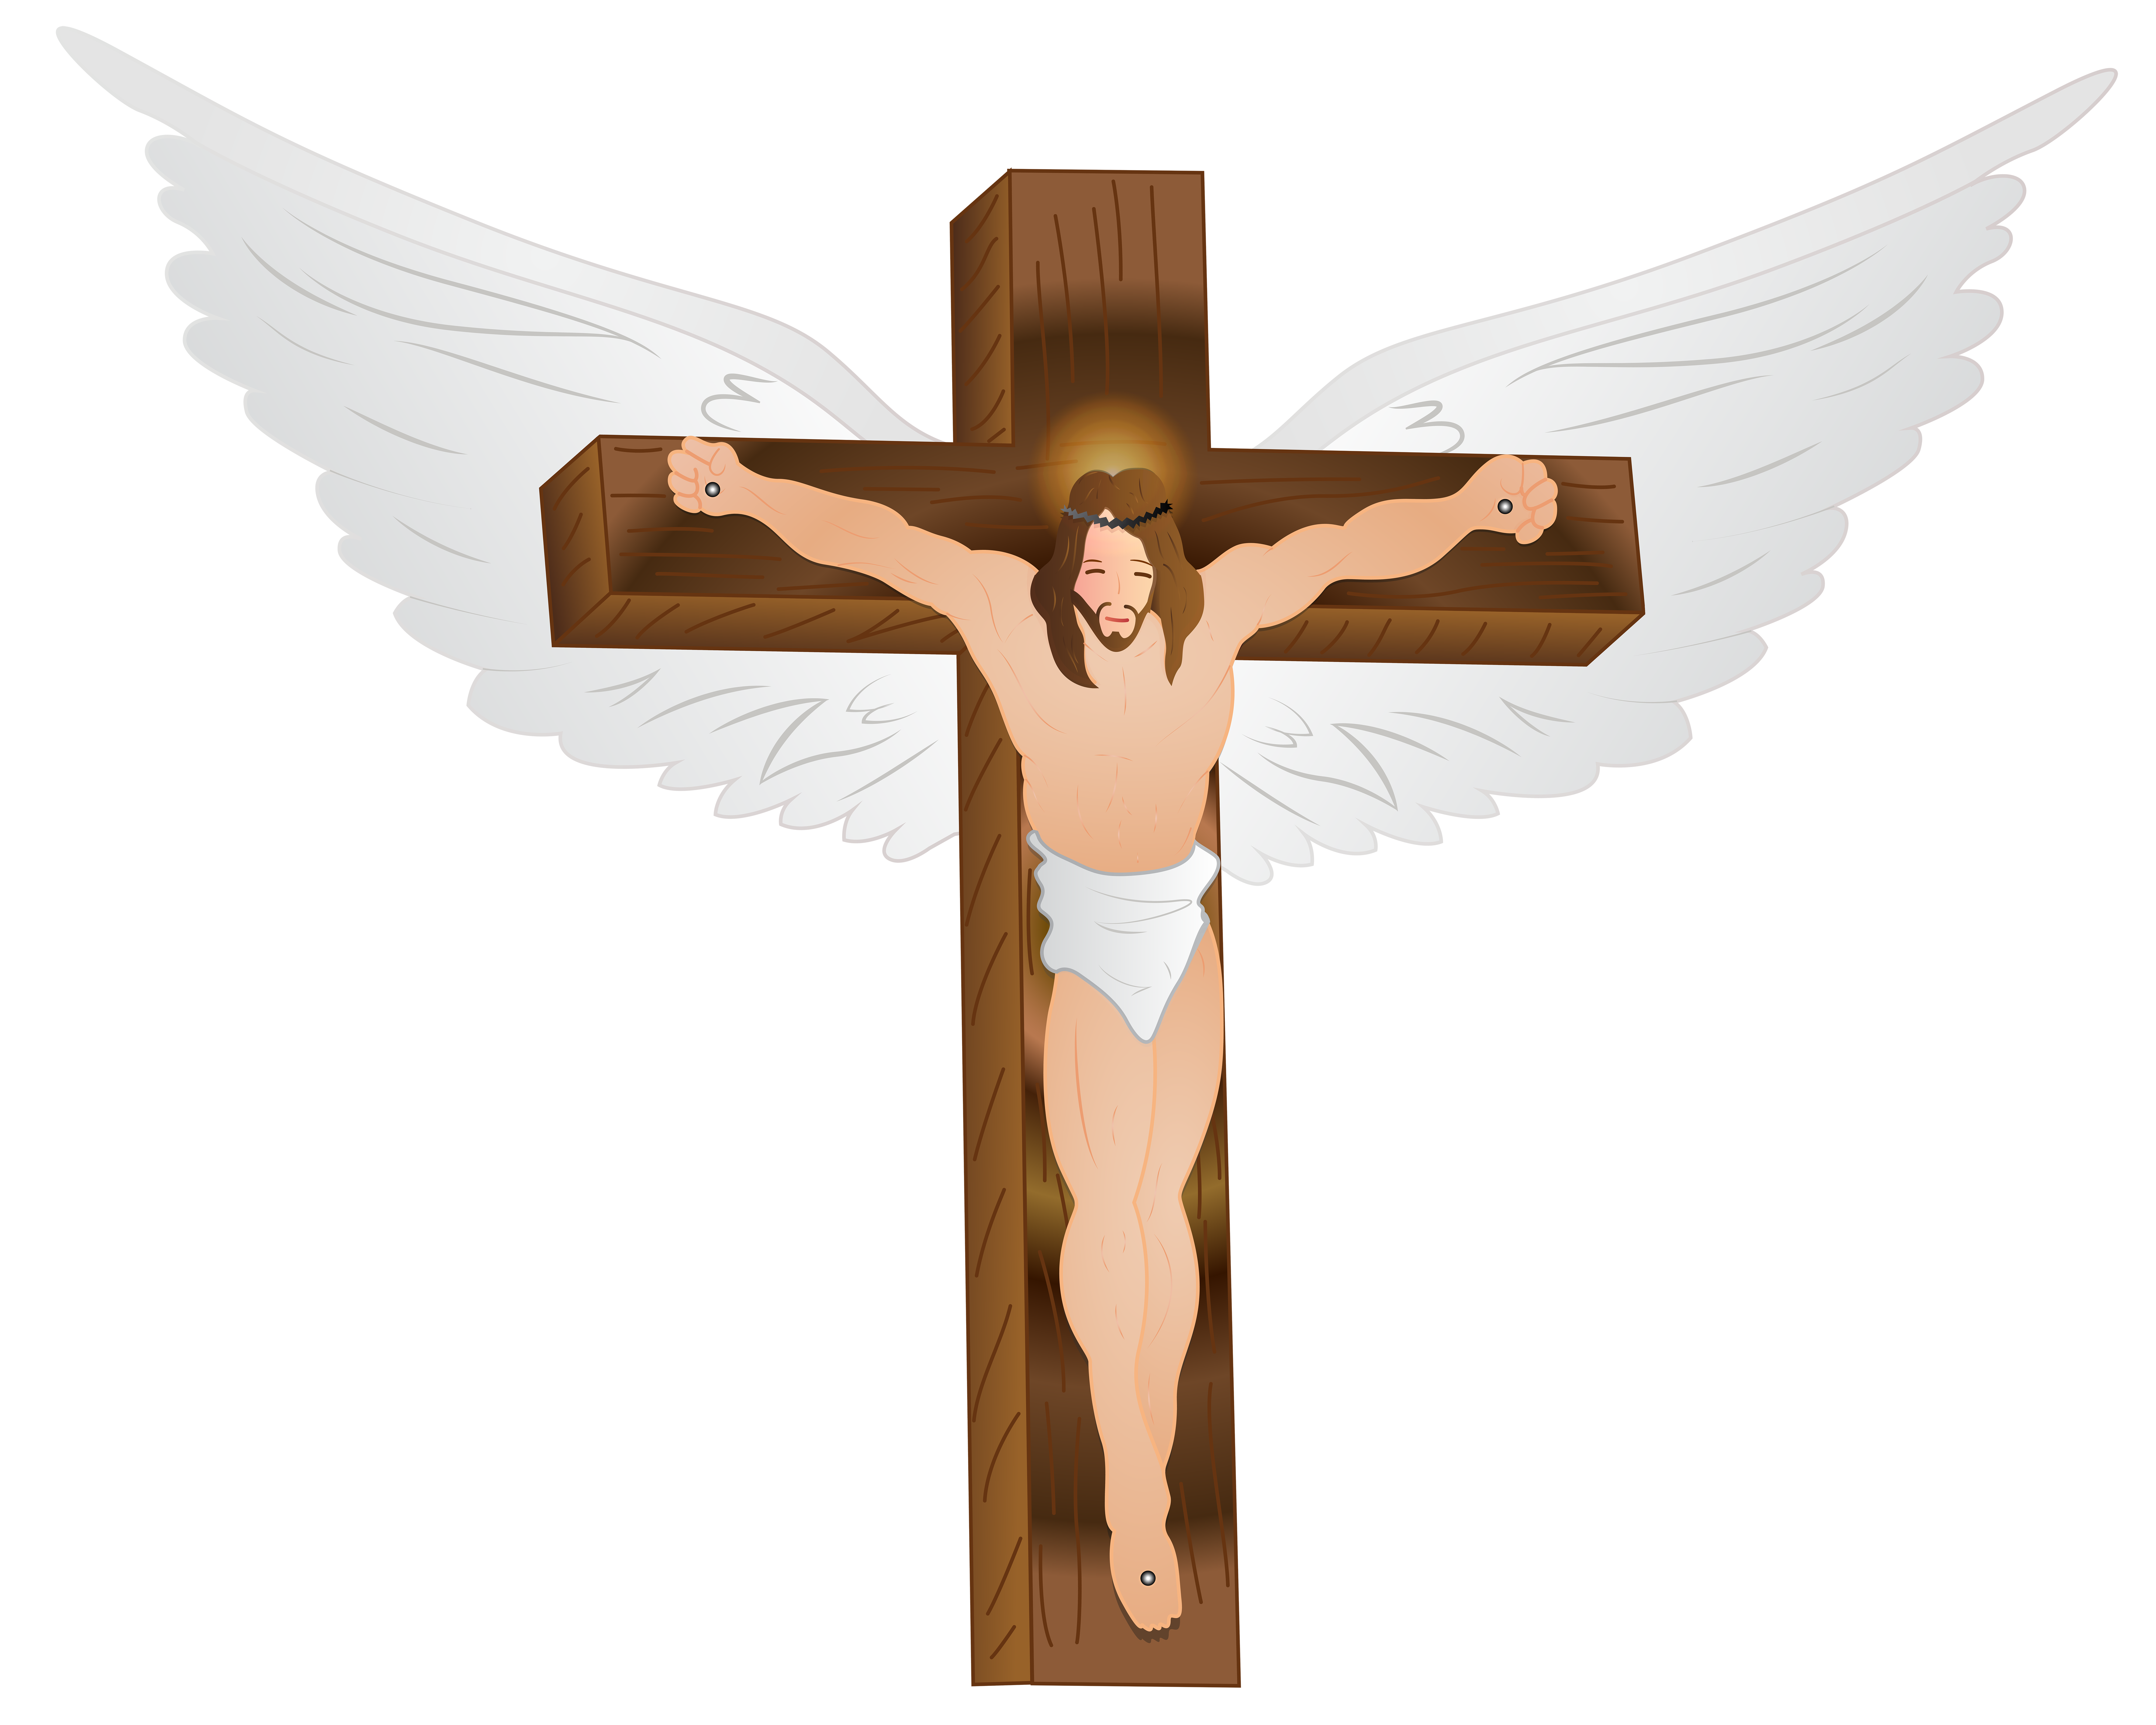 Christ on the cross clipart image black and white stock Jesus Christ on the Cross PNG Clip Art Image   Gallery Yopriceville ... image black and white stock